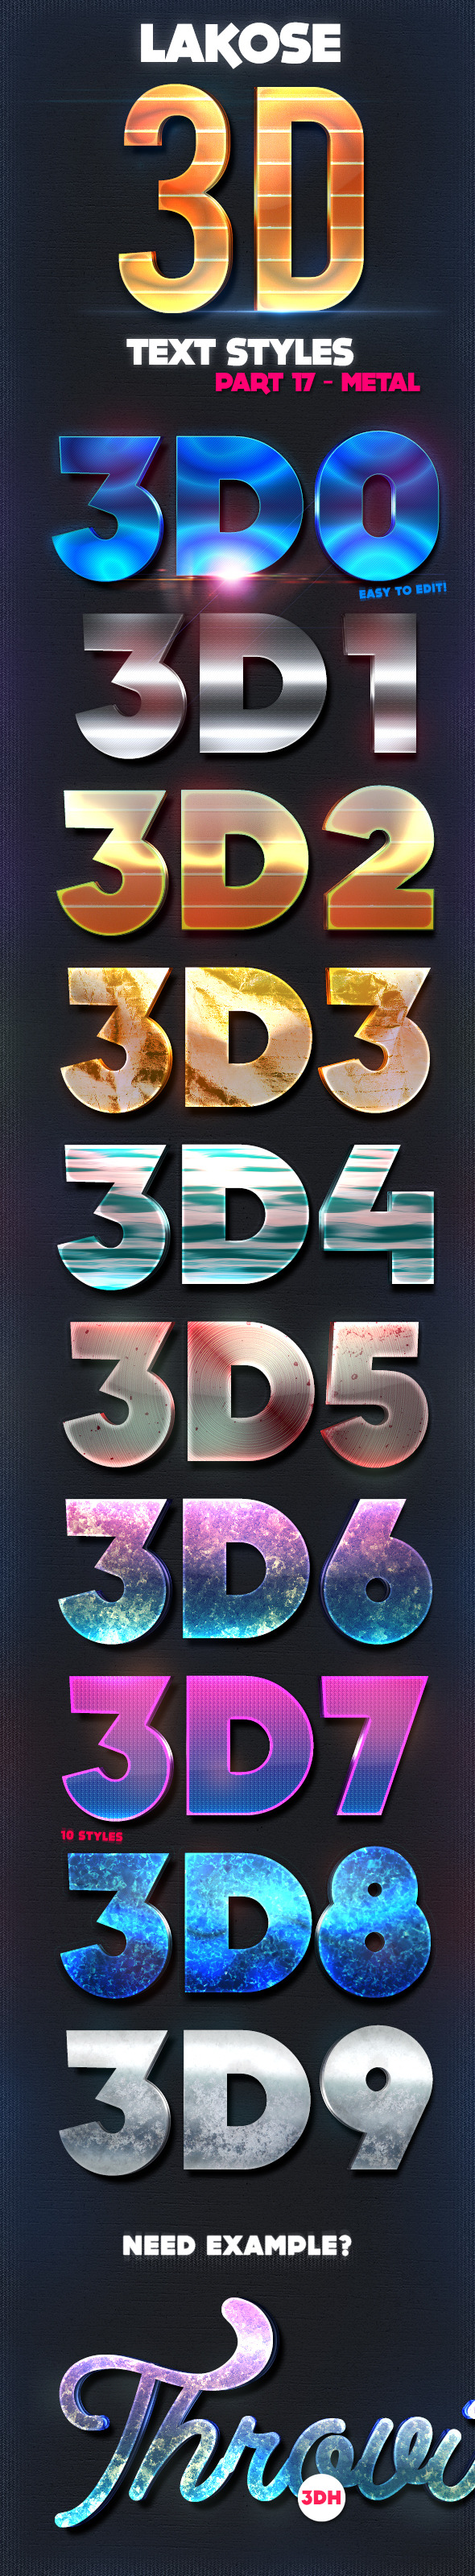 Lakose 3D Text Styles Part 17 - Text Effects Styles